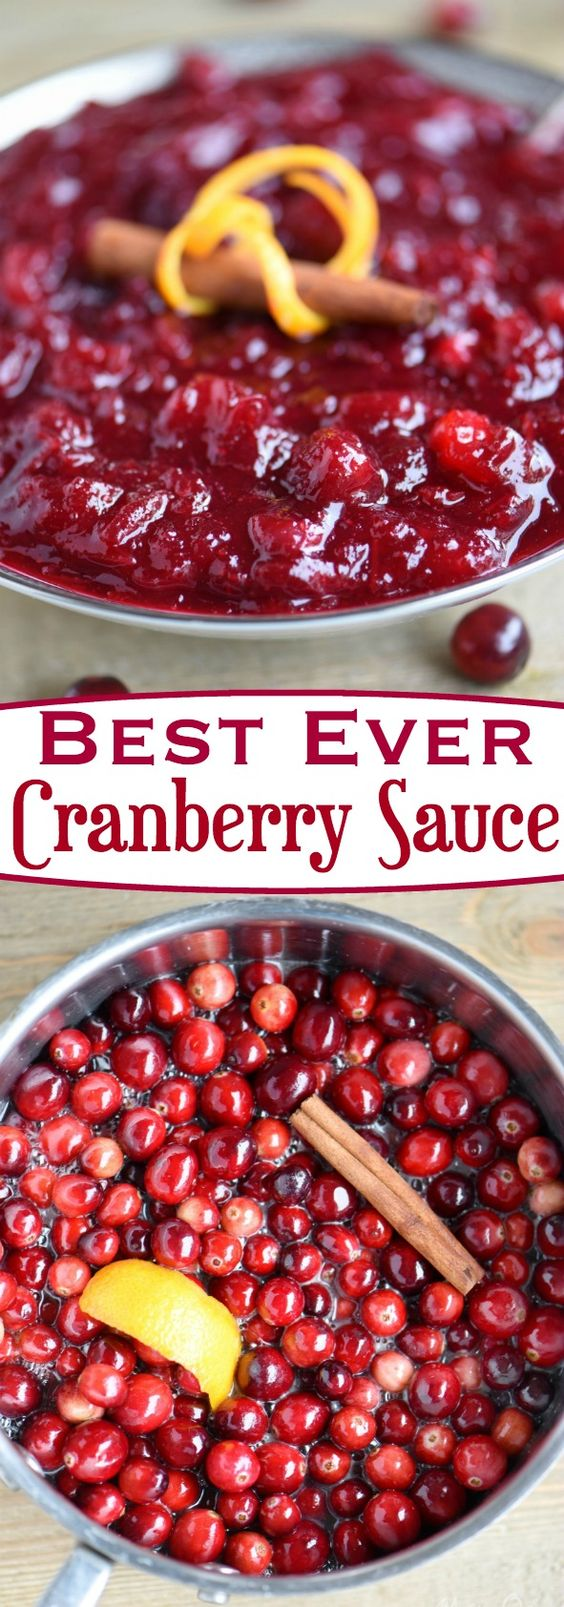 Look no further for the Best Ever Cranberry Sauce! This easy and delightful recipe takes only 15 minutes to make and a handful of ingredients! Spiced with cinnamon and sweetened with orange juice, it is the best combination of sweet and tart! The perfect complement to your holiday meal! #Thanksgiving #cranberry #sauce #recipe